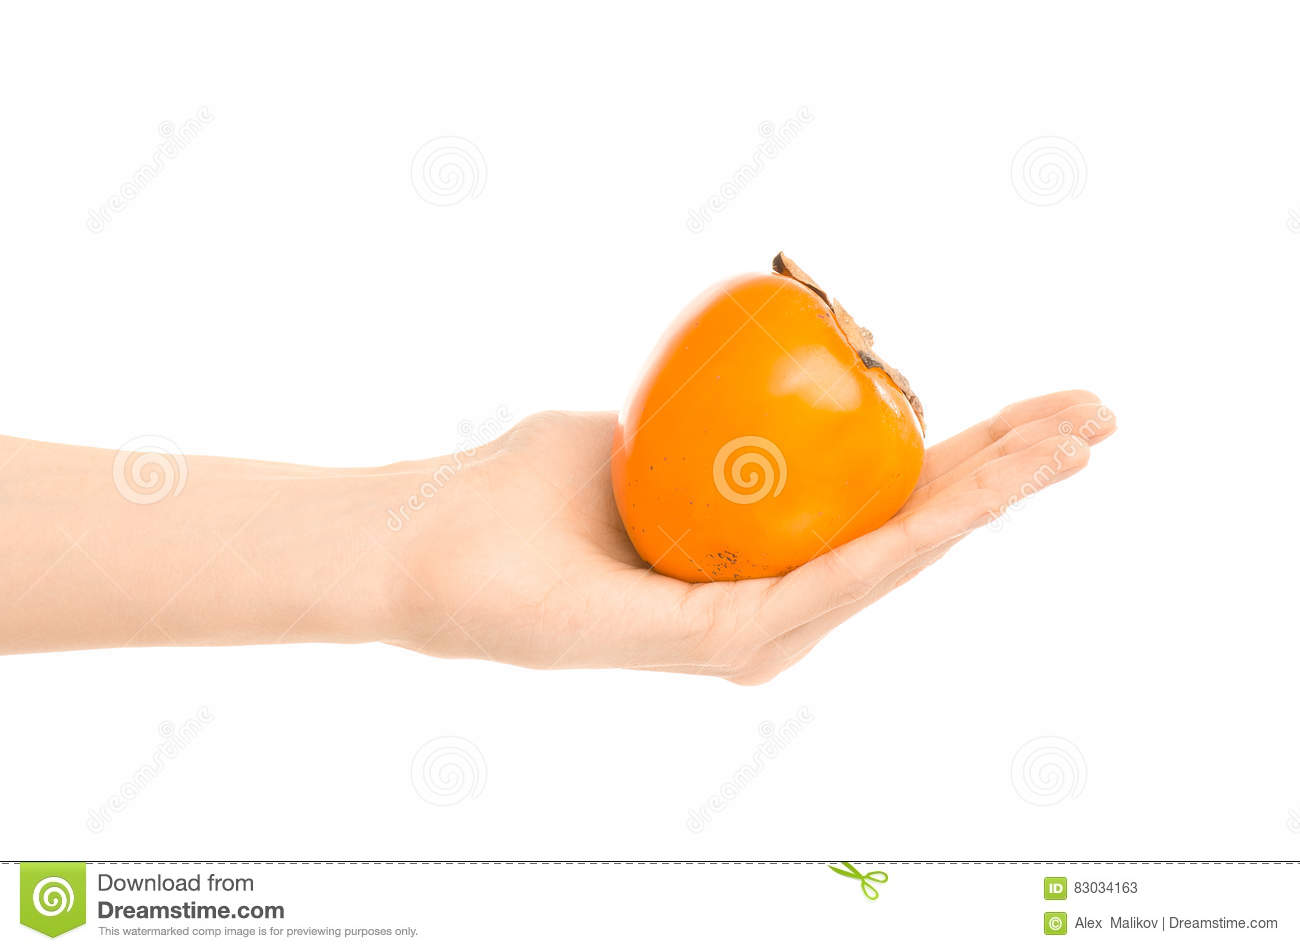 Healthy eating and diet Topic: Human hand holding a ripe persimmon isolated on a white background in the studio